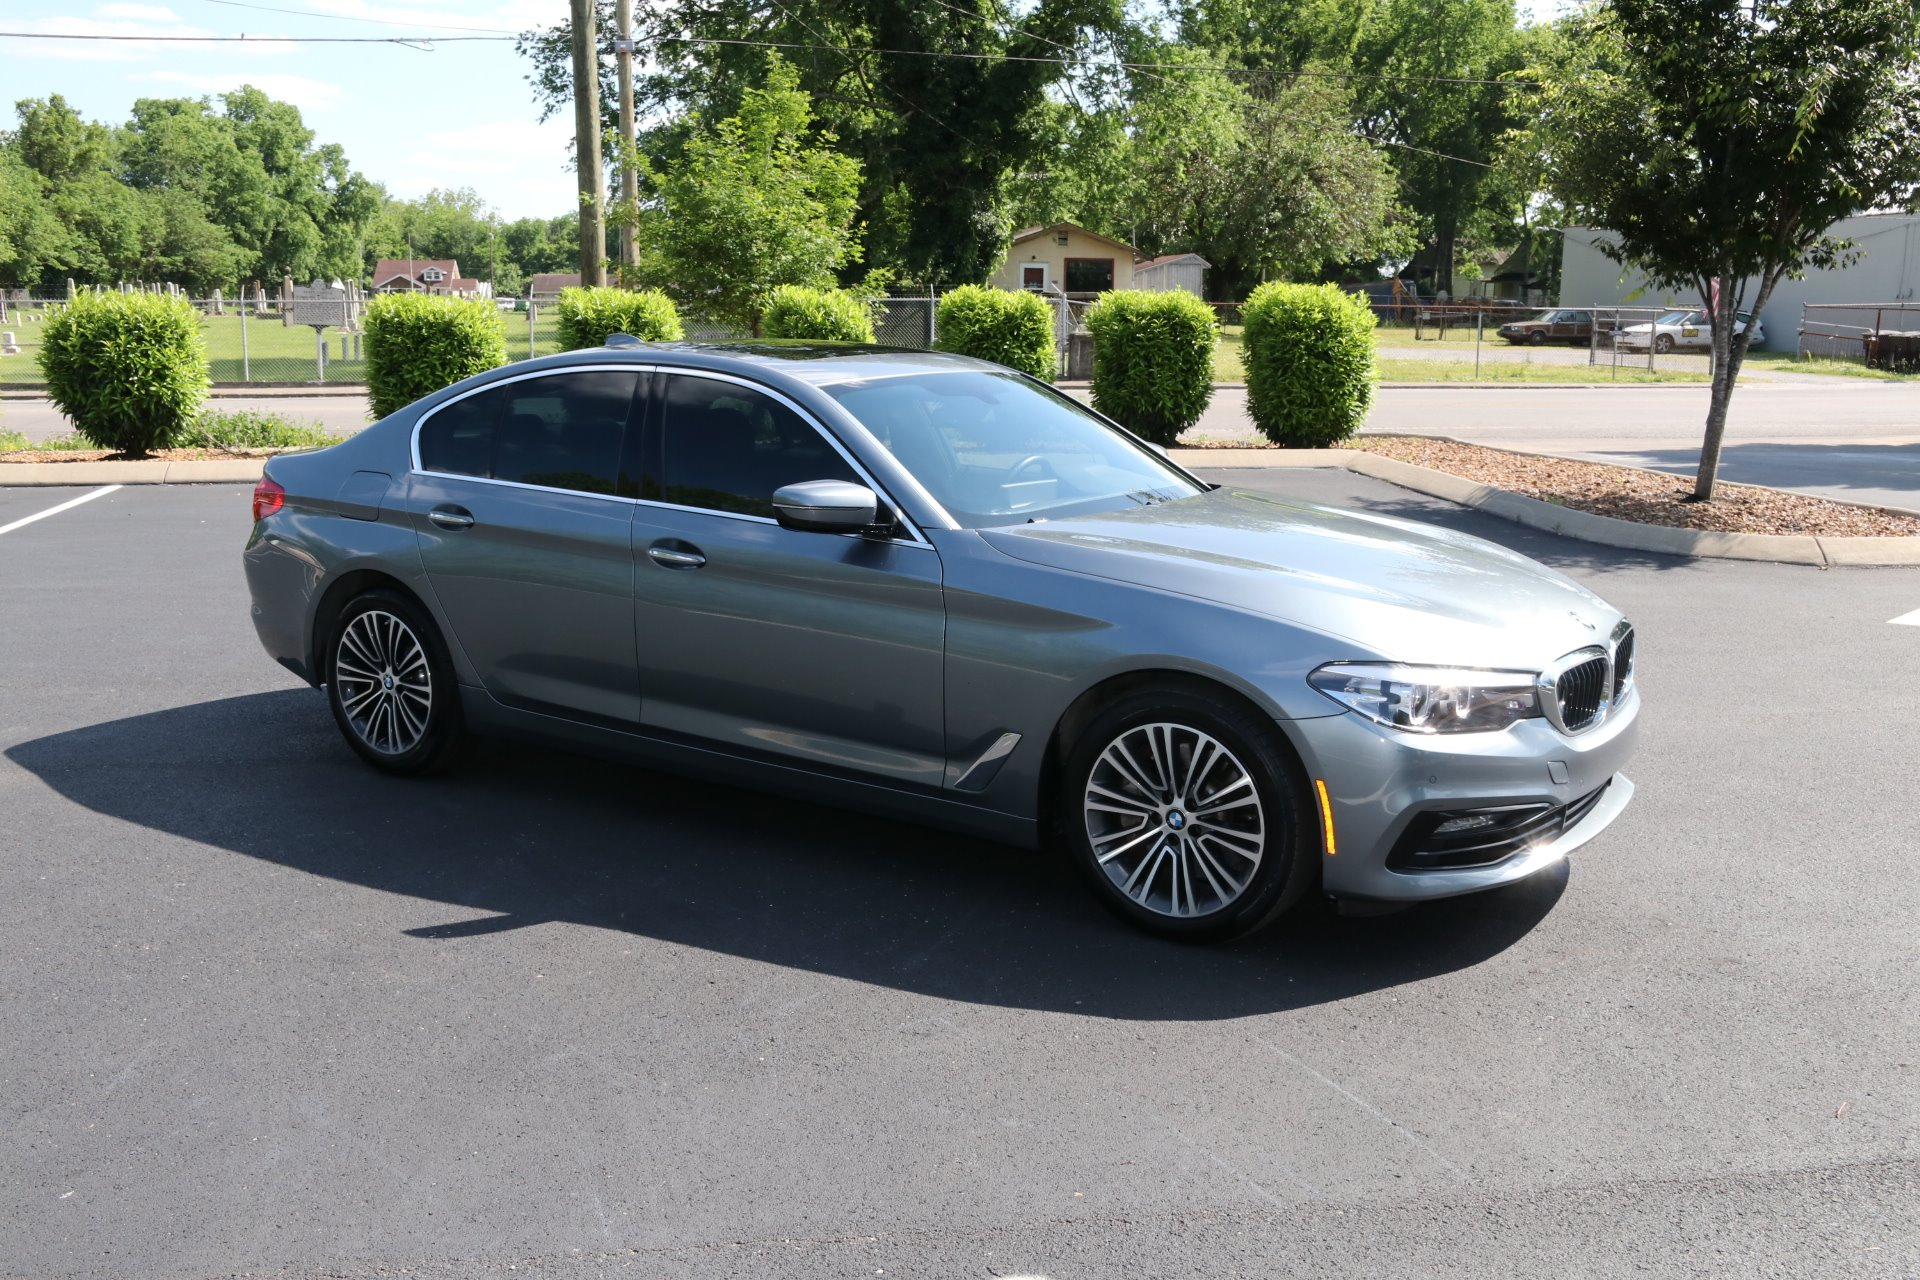 Used 2018 BMW 530I Sport Line W/Nav 530i for sale Sold at Auto Collection in Murfreesboro TN 37129 1